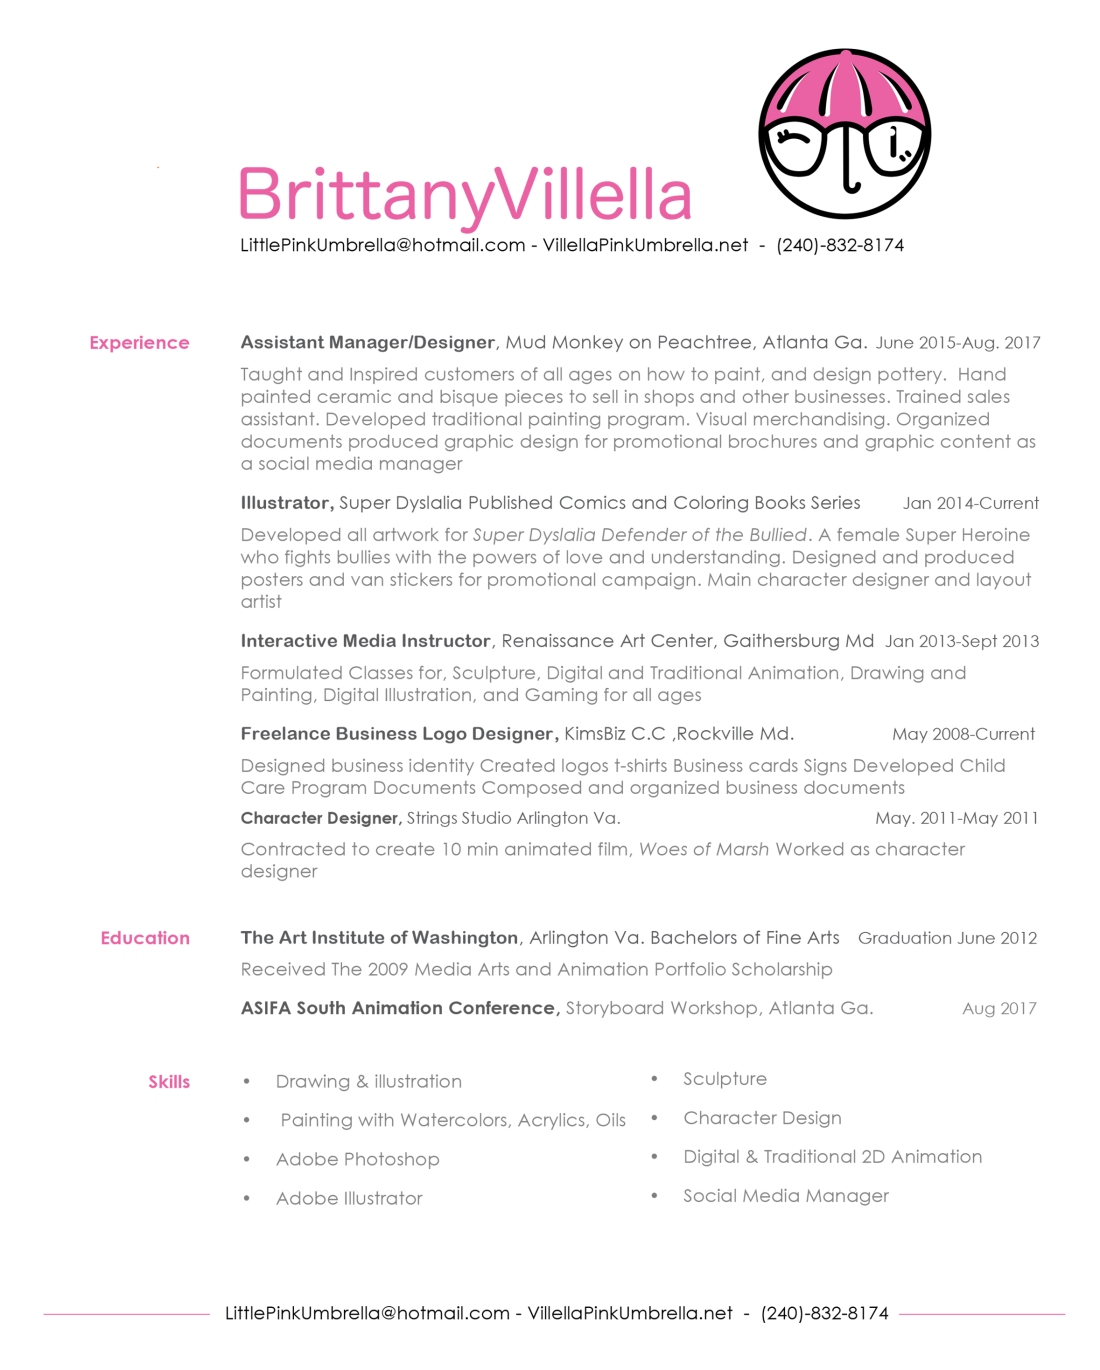 Resume work illustrator Logo file_V005final.jpg